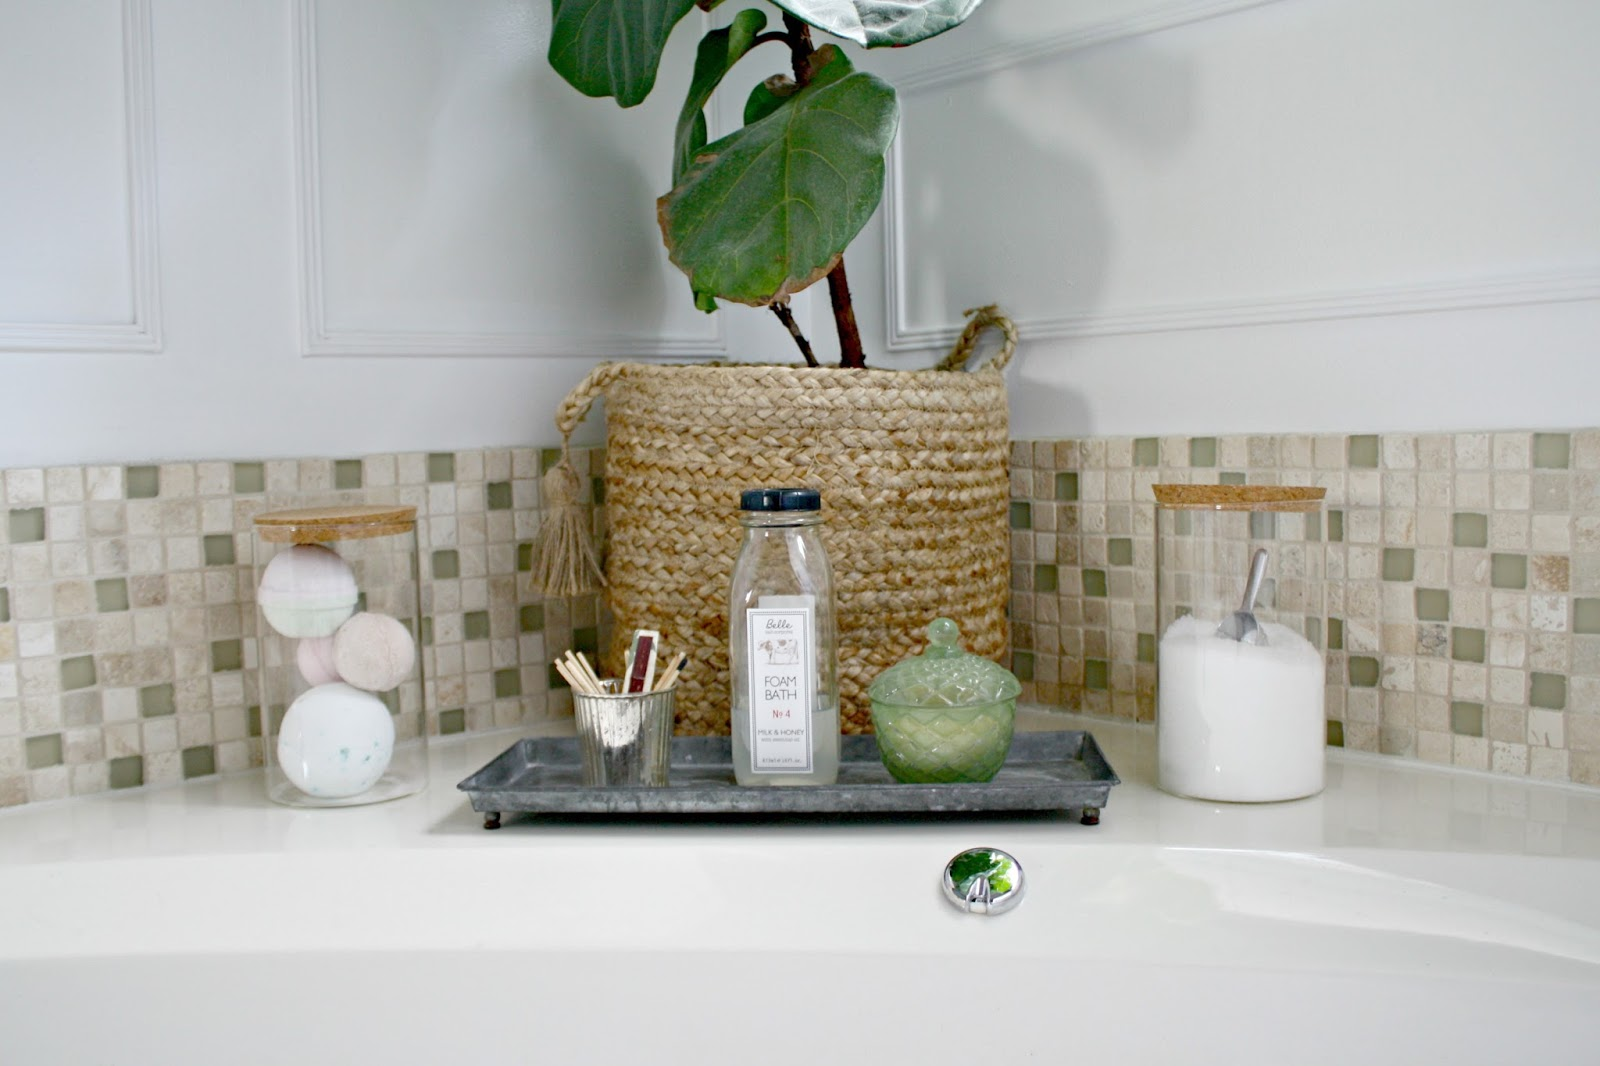 Pretty ways to organize everyday items zhakila decorating for Bathroom things